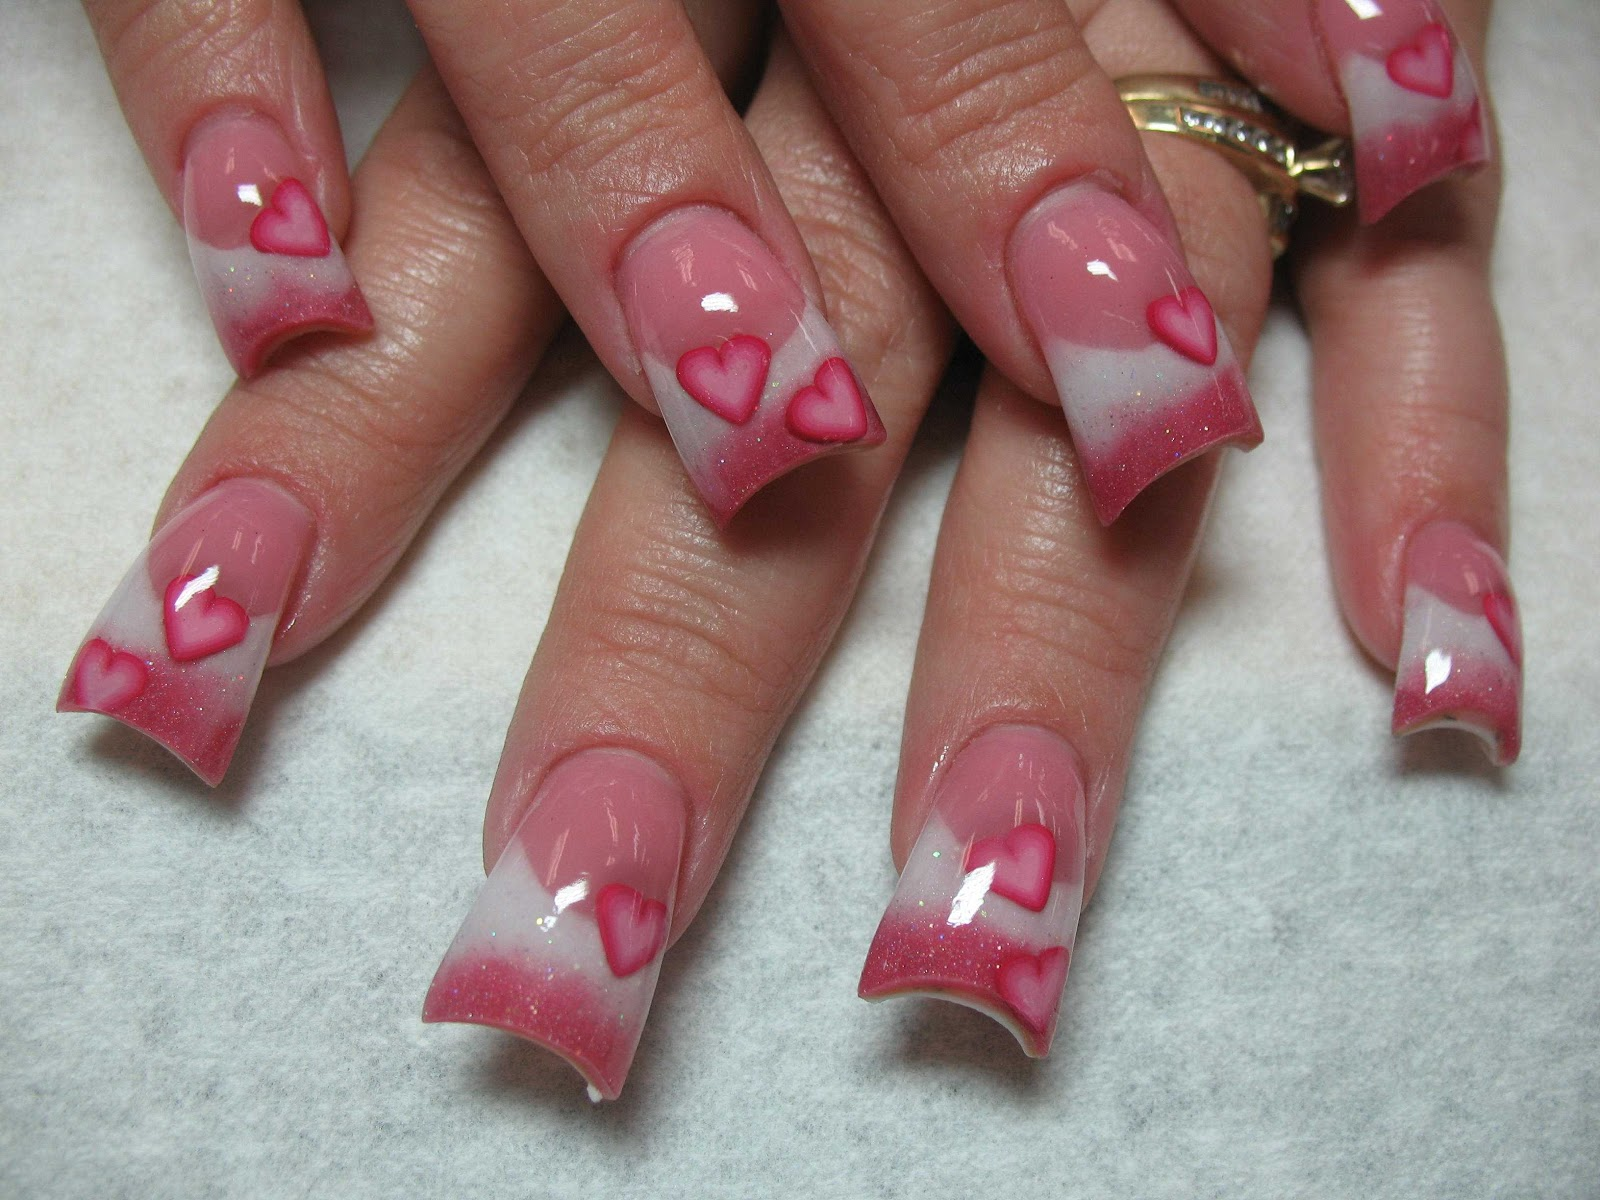 Valentine's day nail designs idea 2014- how to decorate nails with